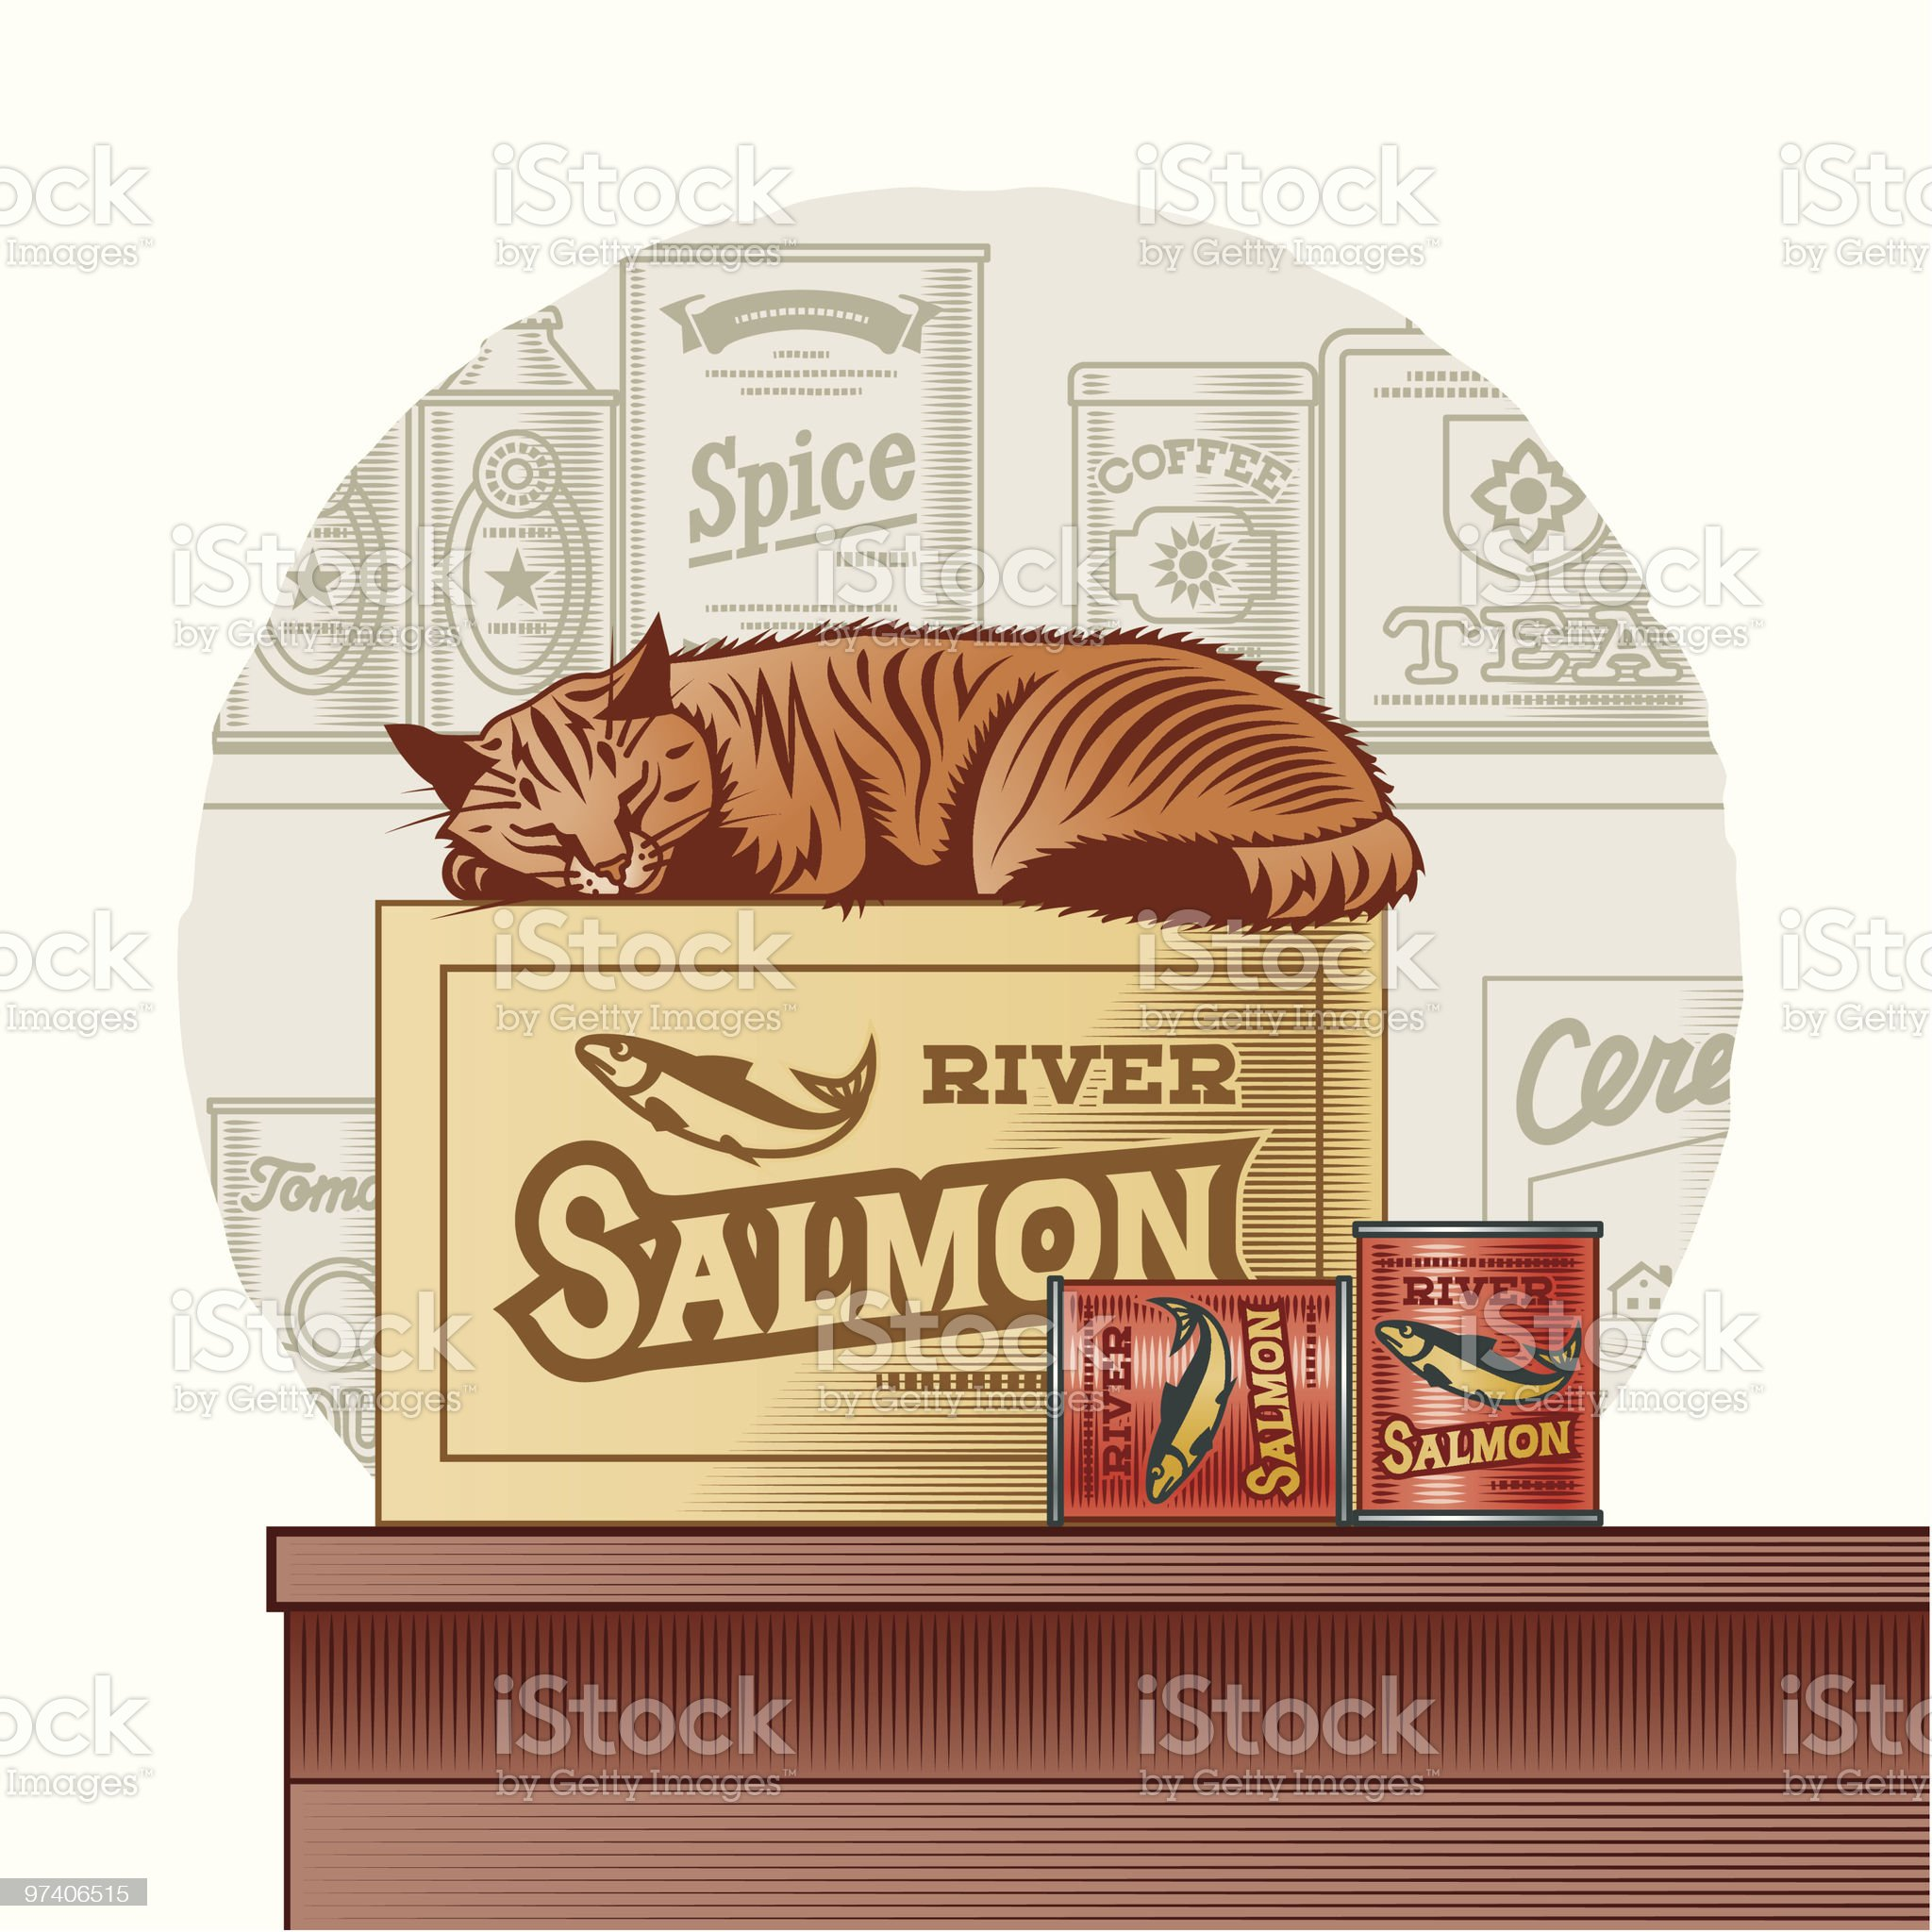 Retro canned fish and sleeping cat royalty-free stock vector art